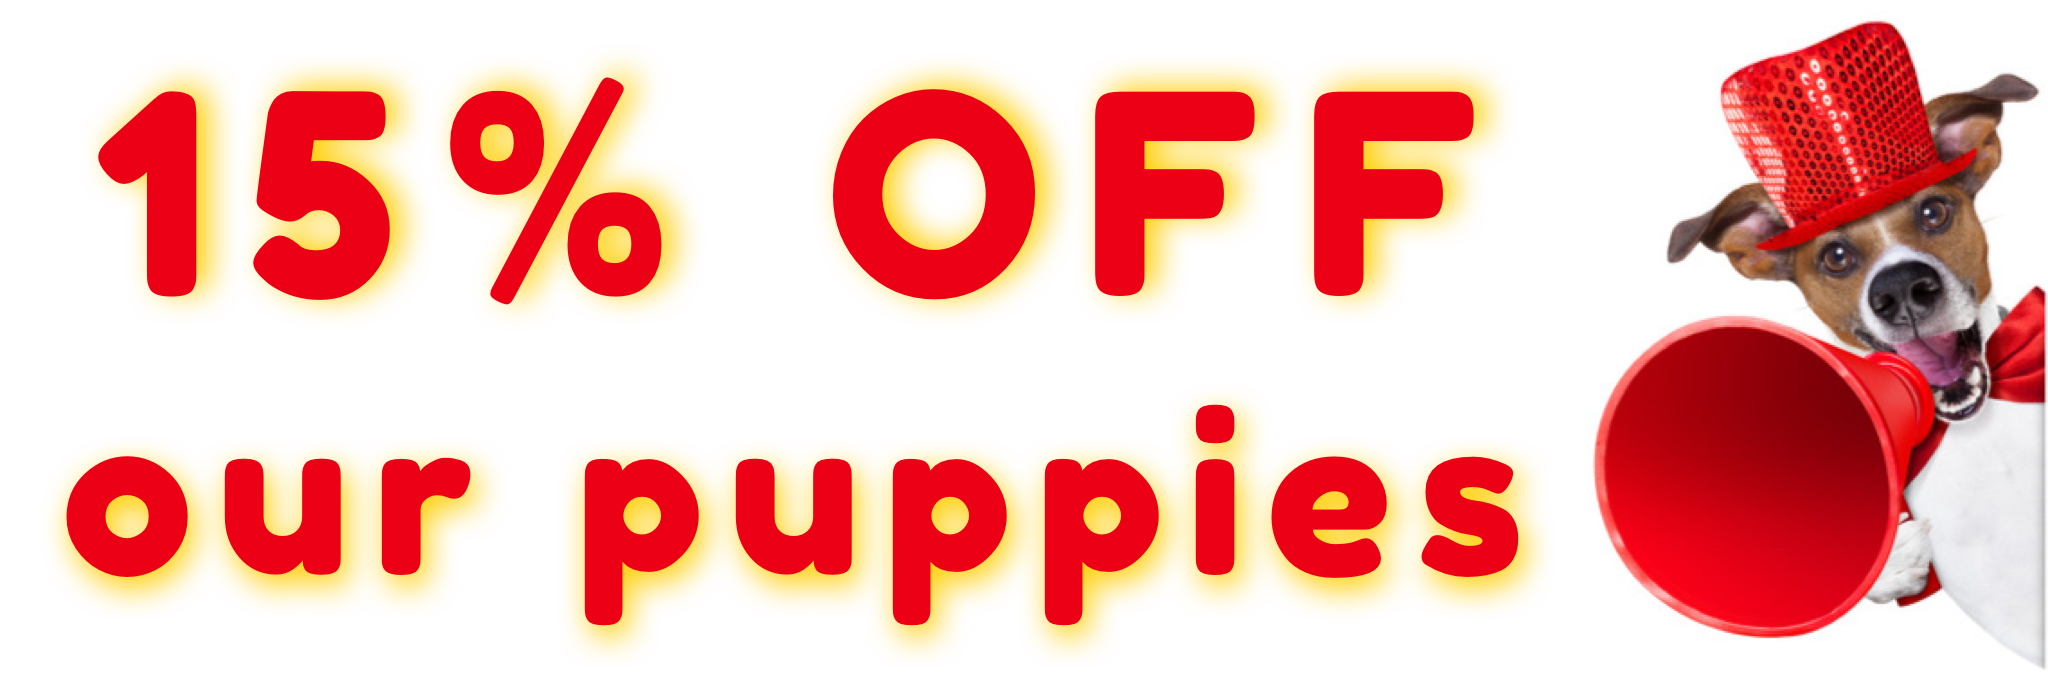 Puppies for sale in UAE